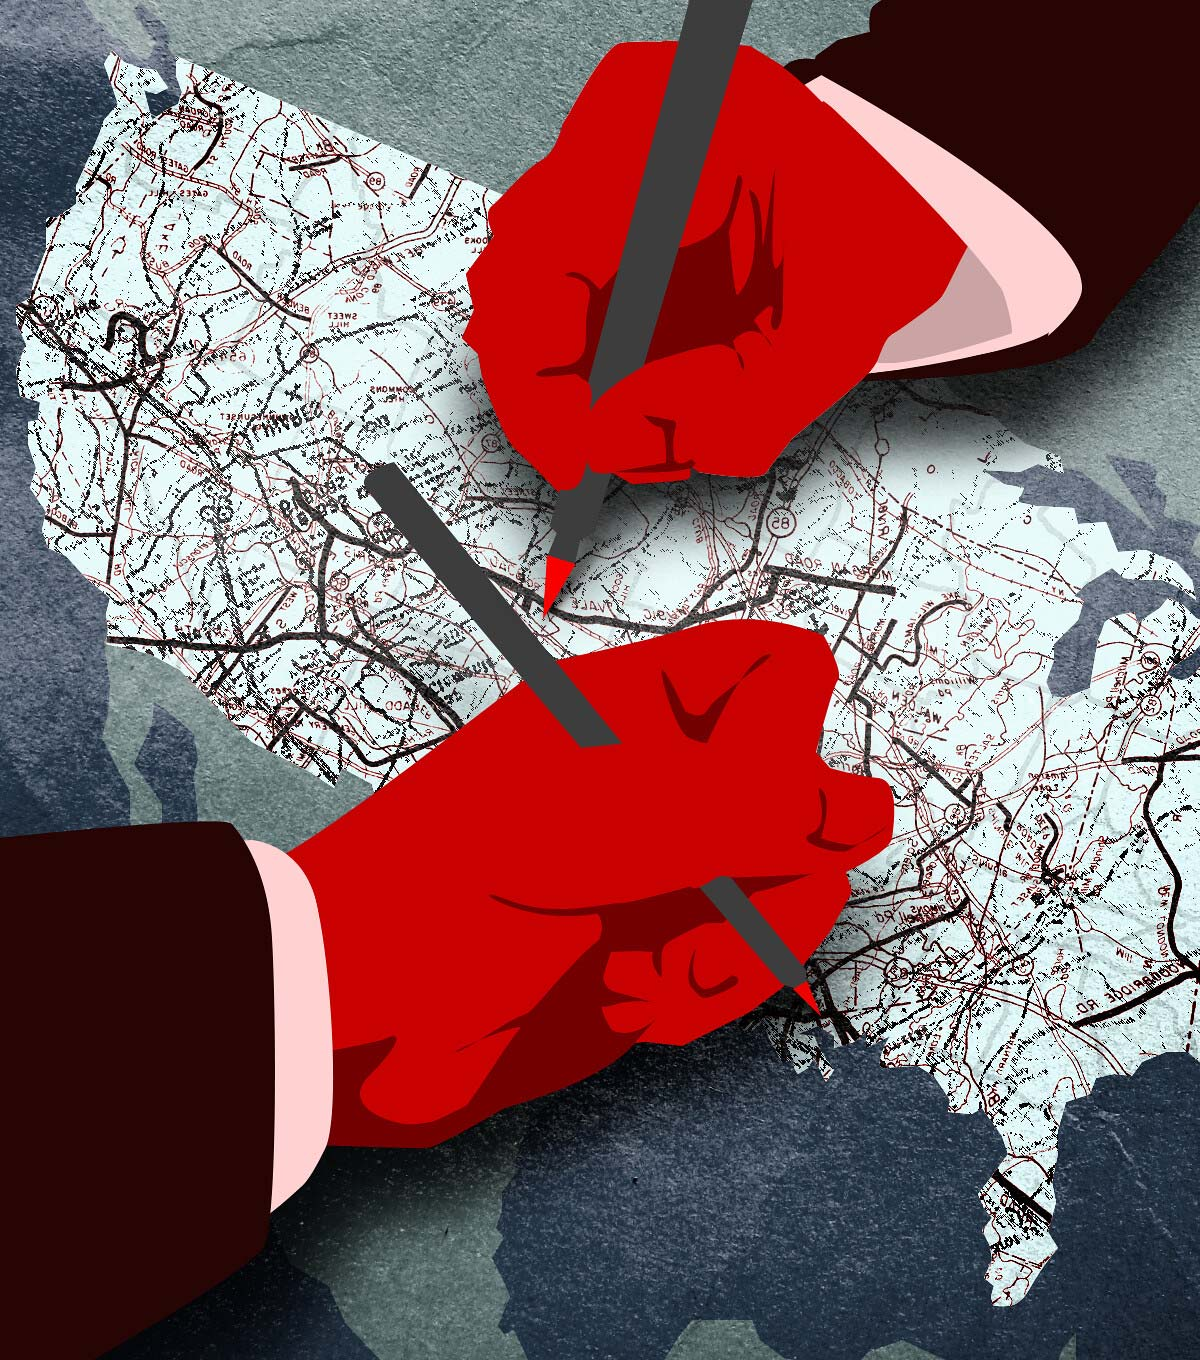 An illustrated, abstract rendering of gerrymandering. Two red hands holding red pens mark up a map of the US. Suit cuffs are around the hands, implying they are politicians.